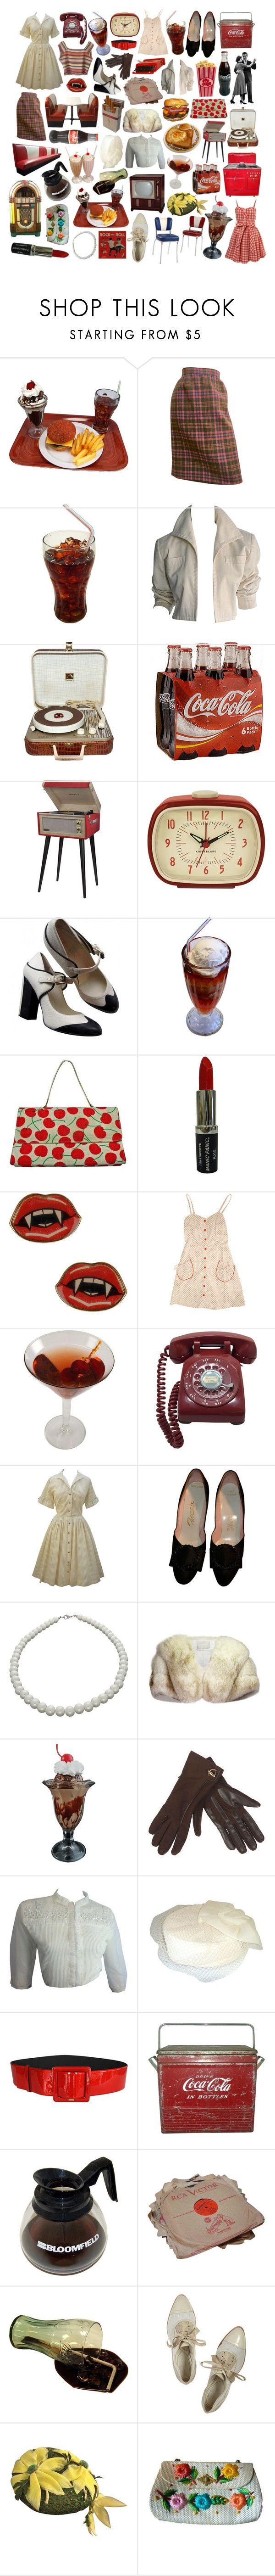 """1950s diner"" by chloesuttonchoi ❤ liked on Polyvore featuring Bill Blass, YSL RIVE GAUCHE, RCA, Dot & Bo, Kikkerland, Chanel, Manic Panic NYC, NEXTE Jewelry, Neiman Marcus and Duluth Pack"